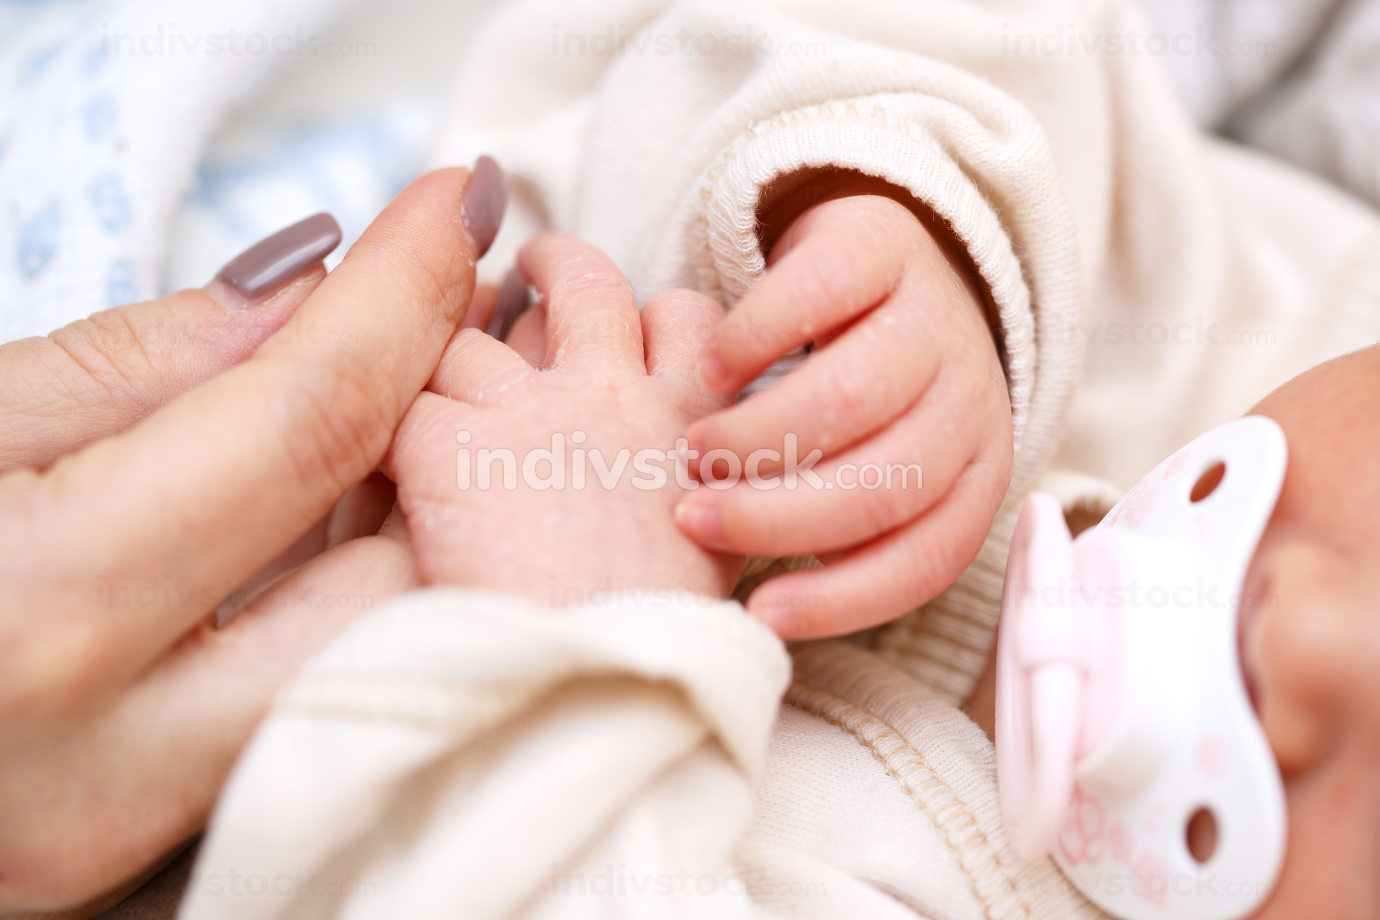 small fingers, hands of a newborn baby close-up. baby has pacifier in her mouth . small depth of focus area